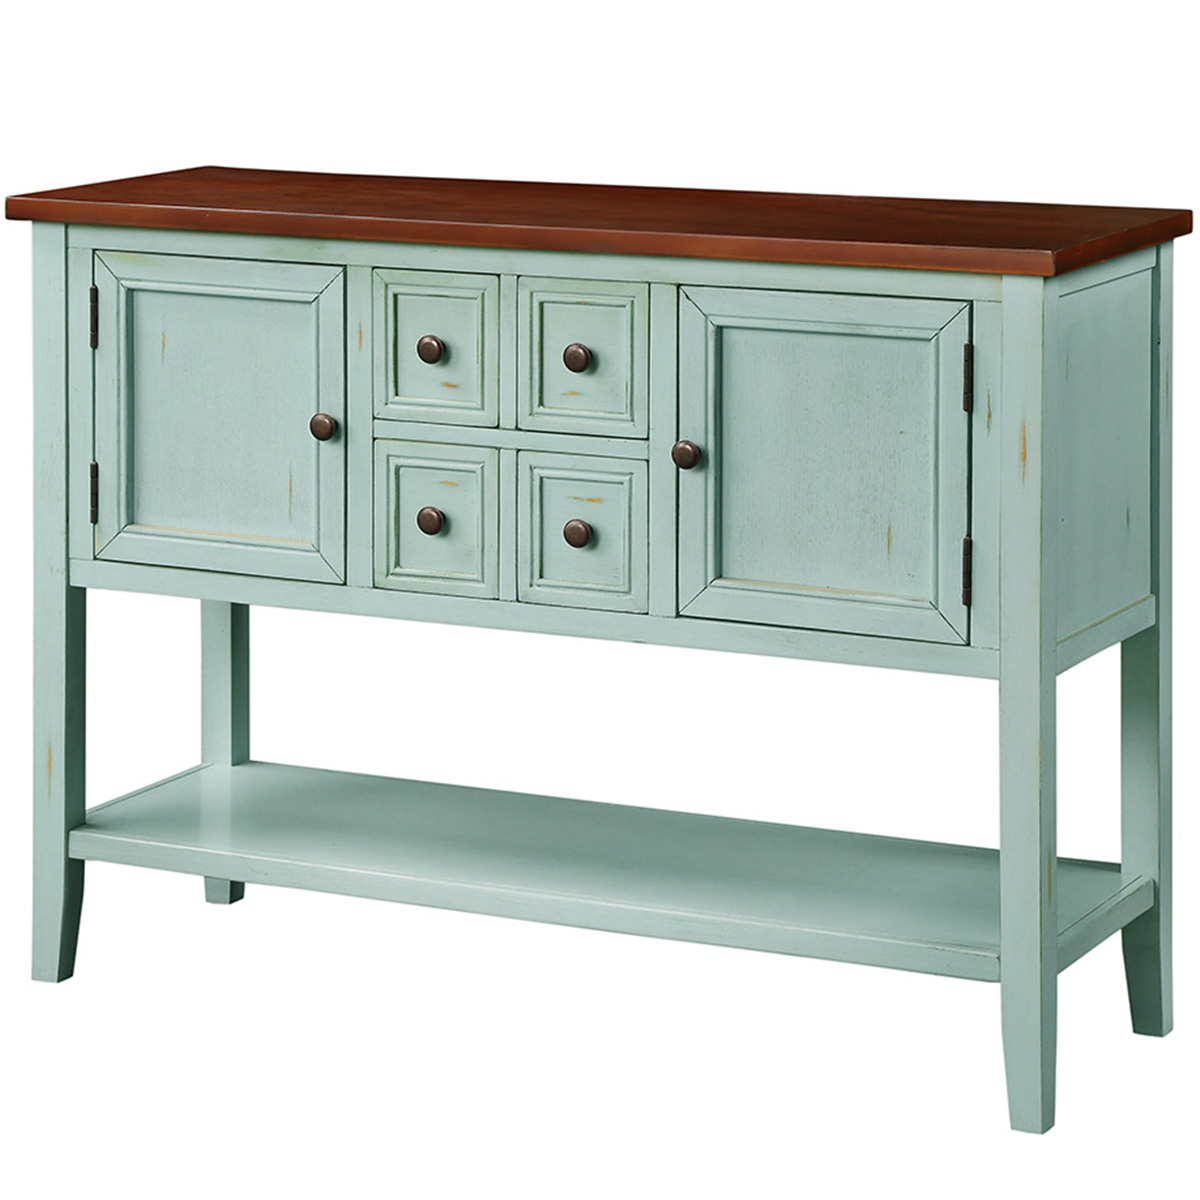 Picture of: Buffet Cabinet Sideboard 46 Dining Room Console Table W 4 Storage Drawers 2 Cabinets 1 Bottom Shelf Buffet Server Cabinet Kitchen Console Table Home Furniture Side Cabinet Antique Blue Q3766 Walmart Com Walmart Com